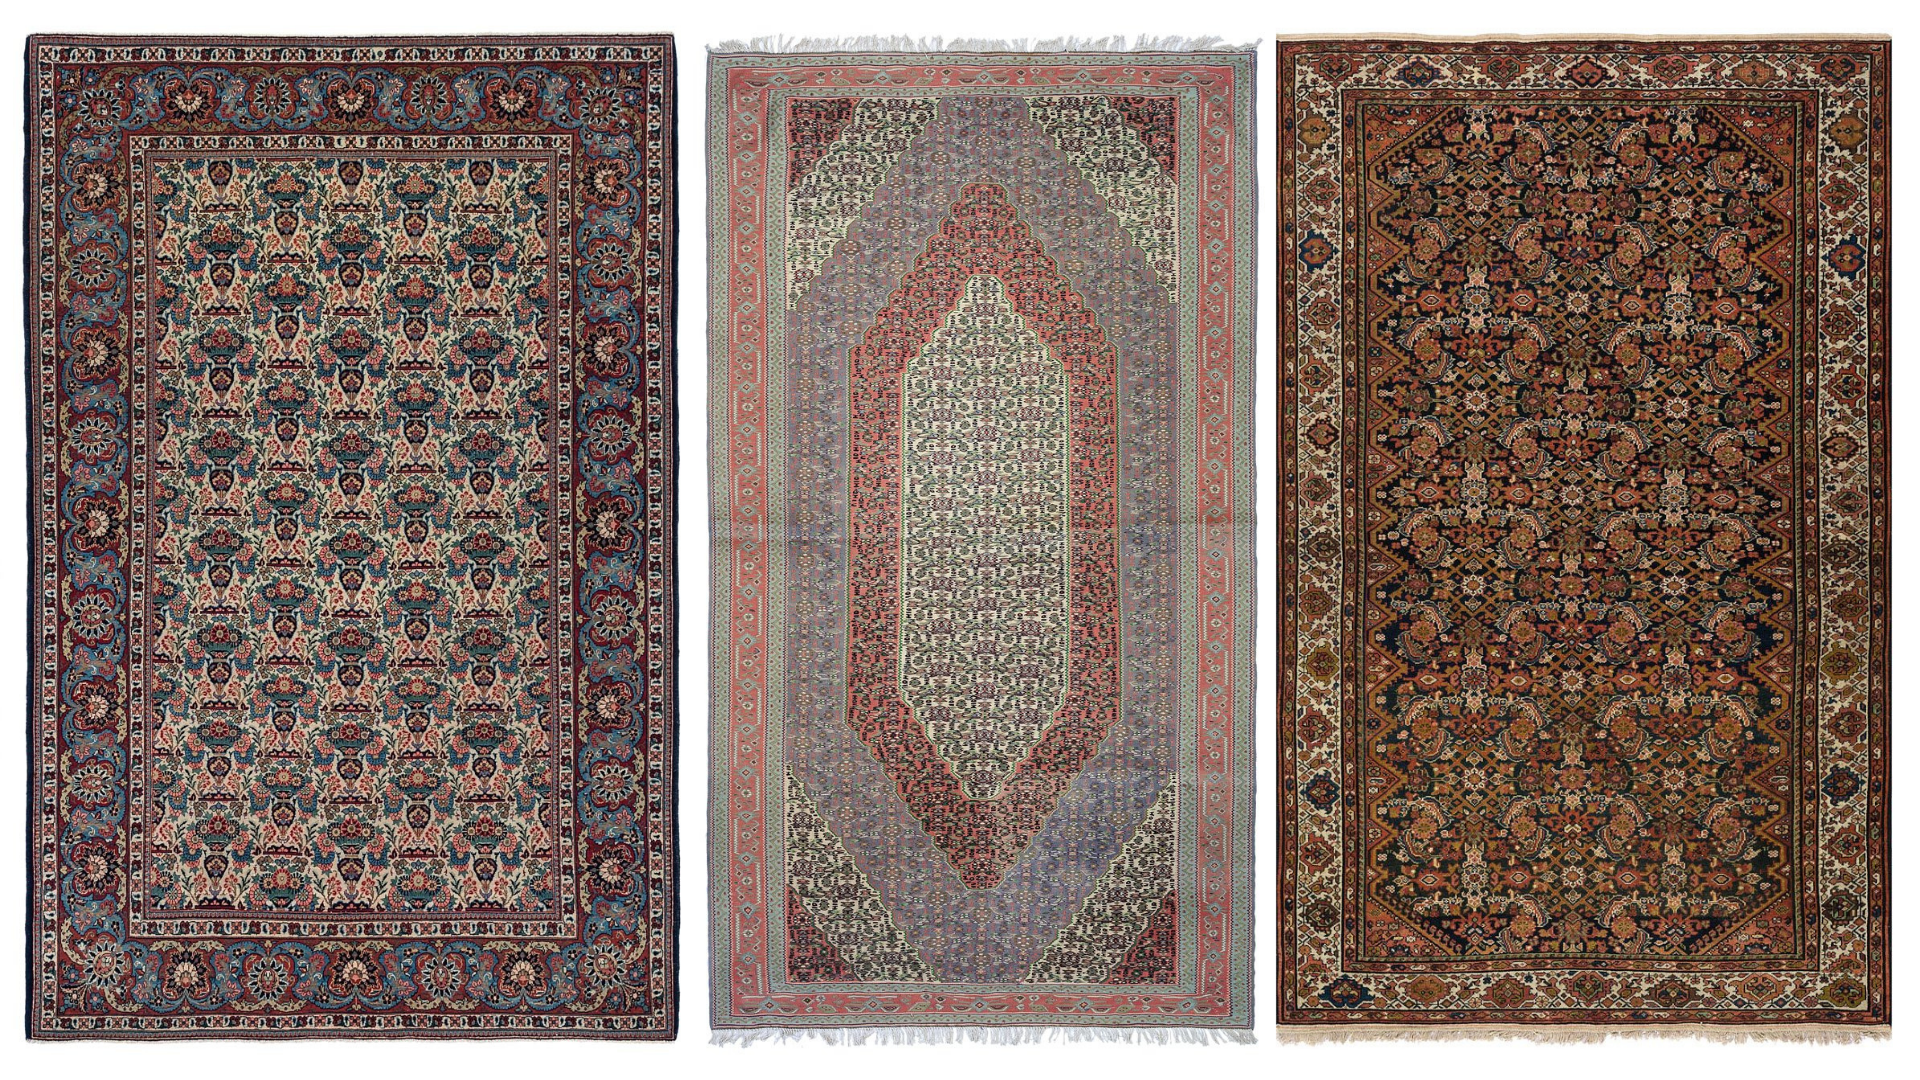 persian rugs, oriental rugs, overdyed rugs, london rugs, instagram rugs, rugs of instagram, home decor, home accessories, interior decor, interior design, design ideas, vintage rugs, design inspiration, home decor inspiration